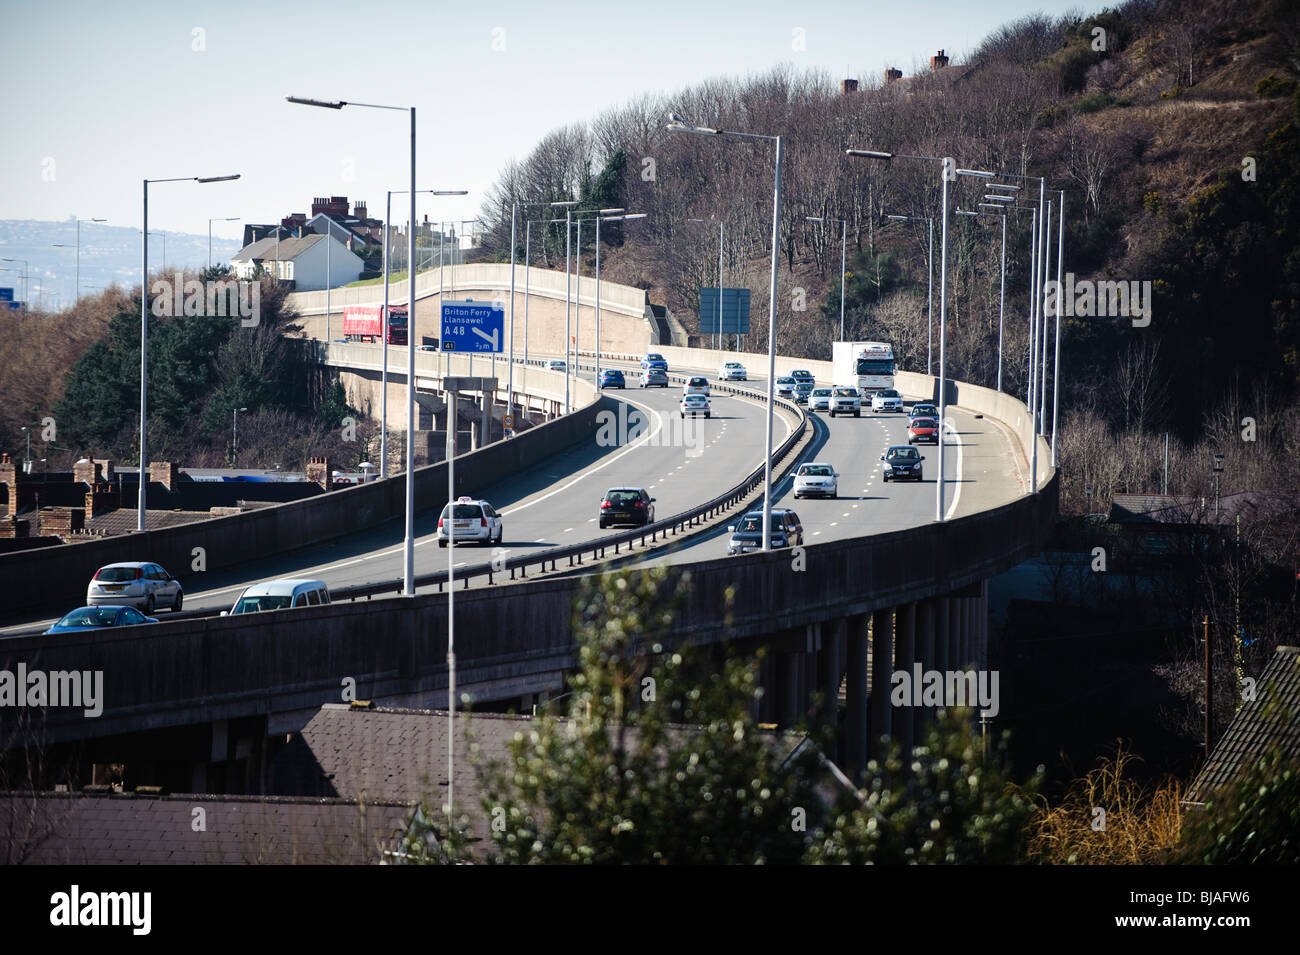 An Elevated section of the M4 motorway at Port Talbot, South Wales, UK - Stock Image